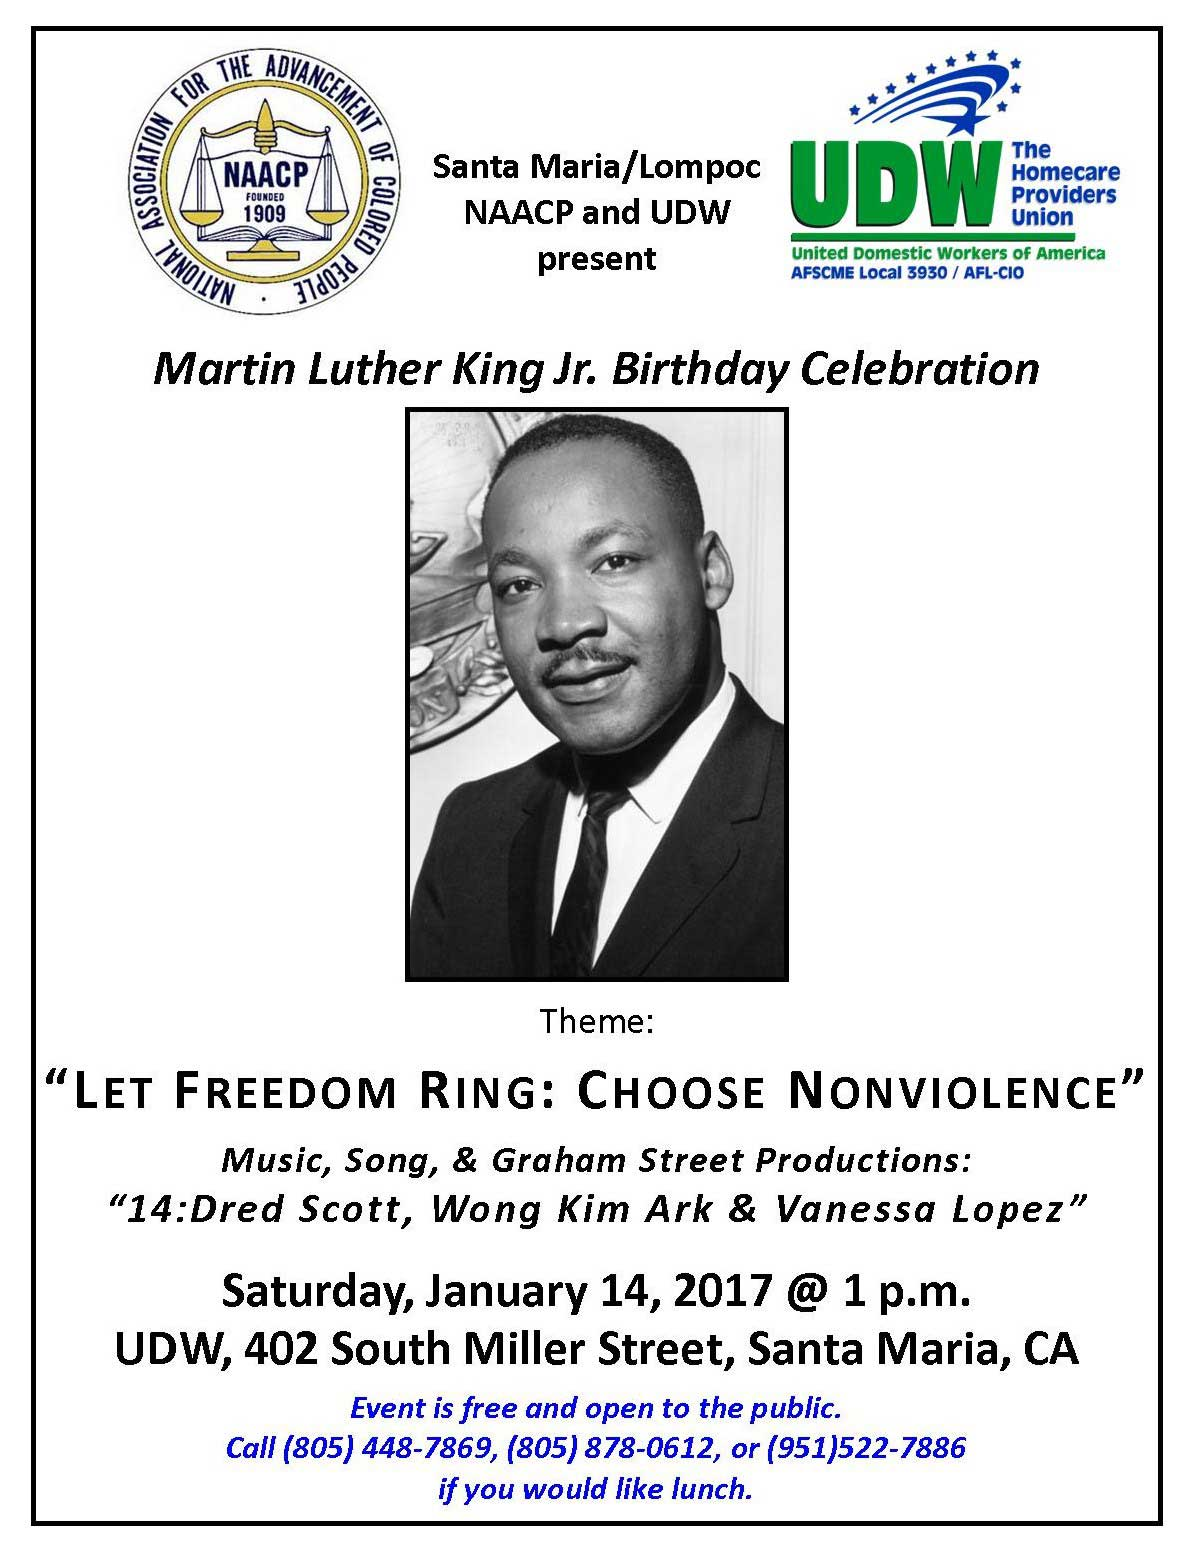 NAACP-UDW-Martin-Luther-King-Jr--Birthday-Celebration-Flyer-2017.jpg